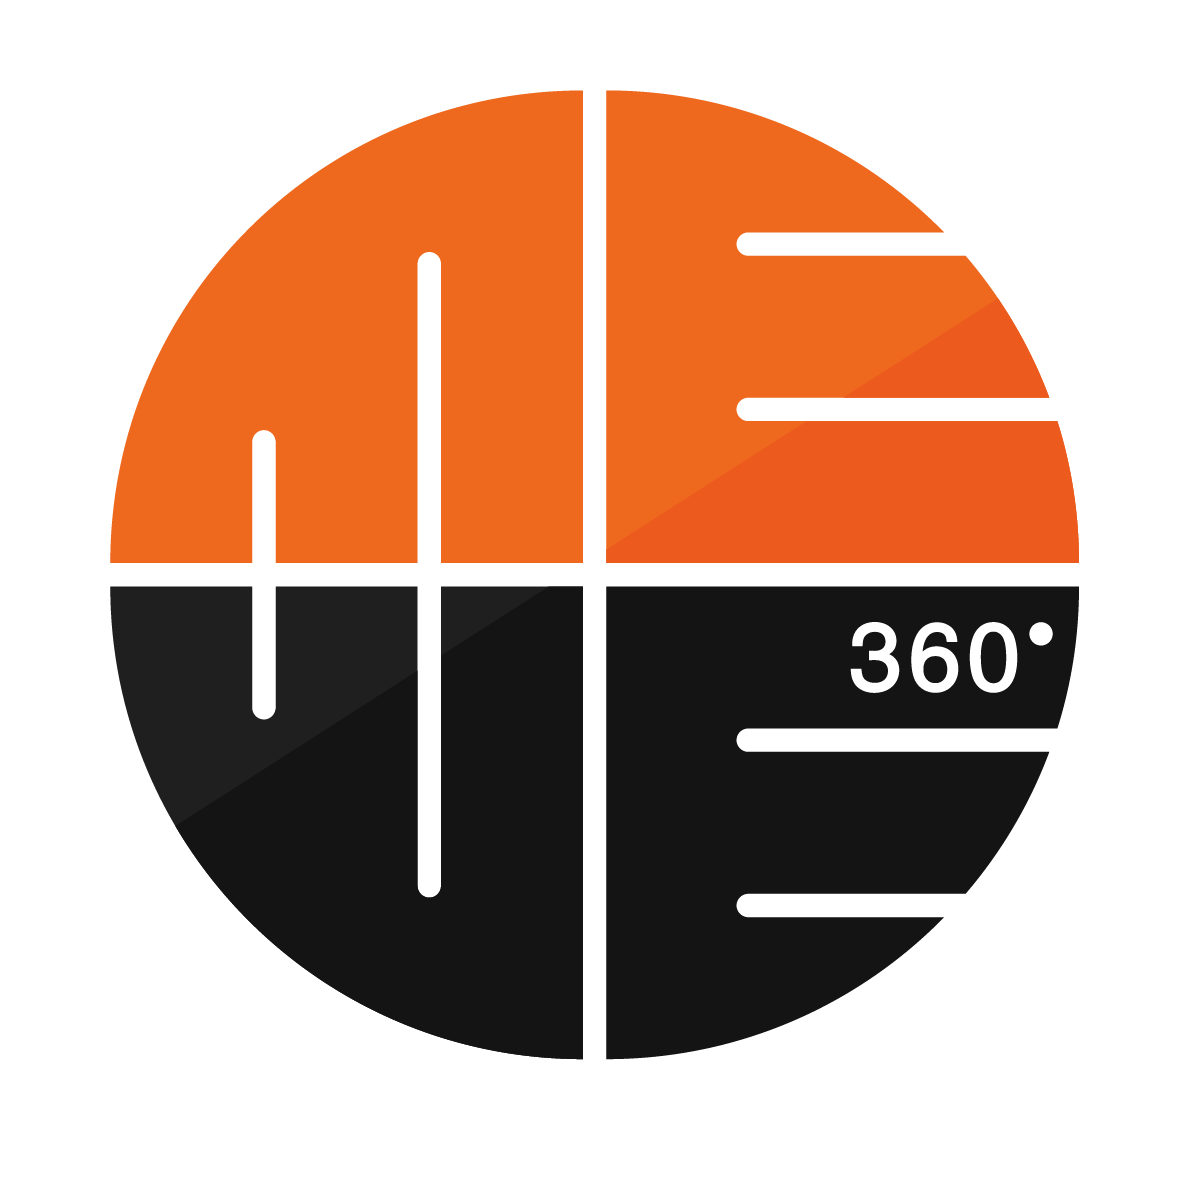 MeWe360 offering up to £10 to creative entrepreneurs